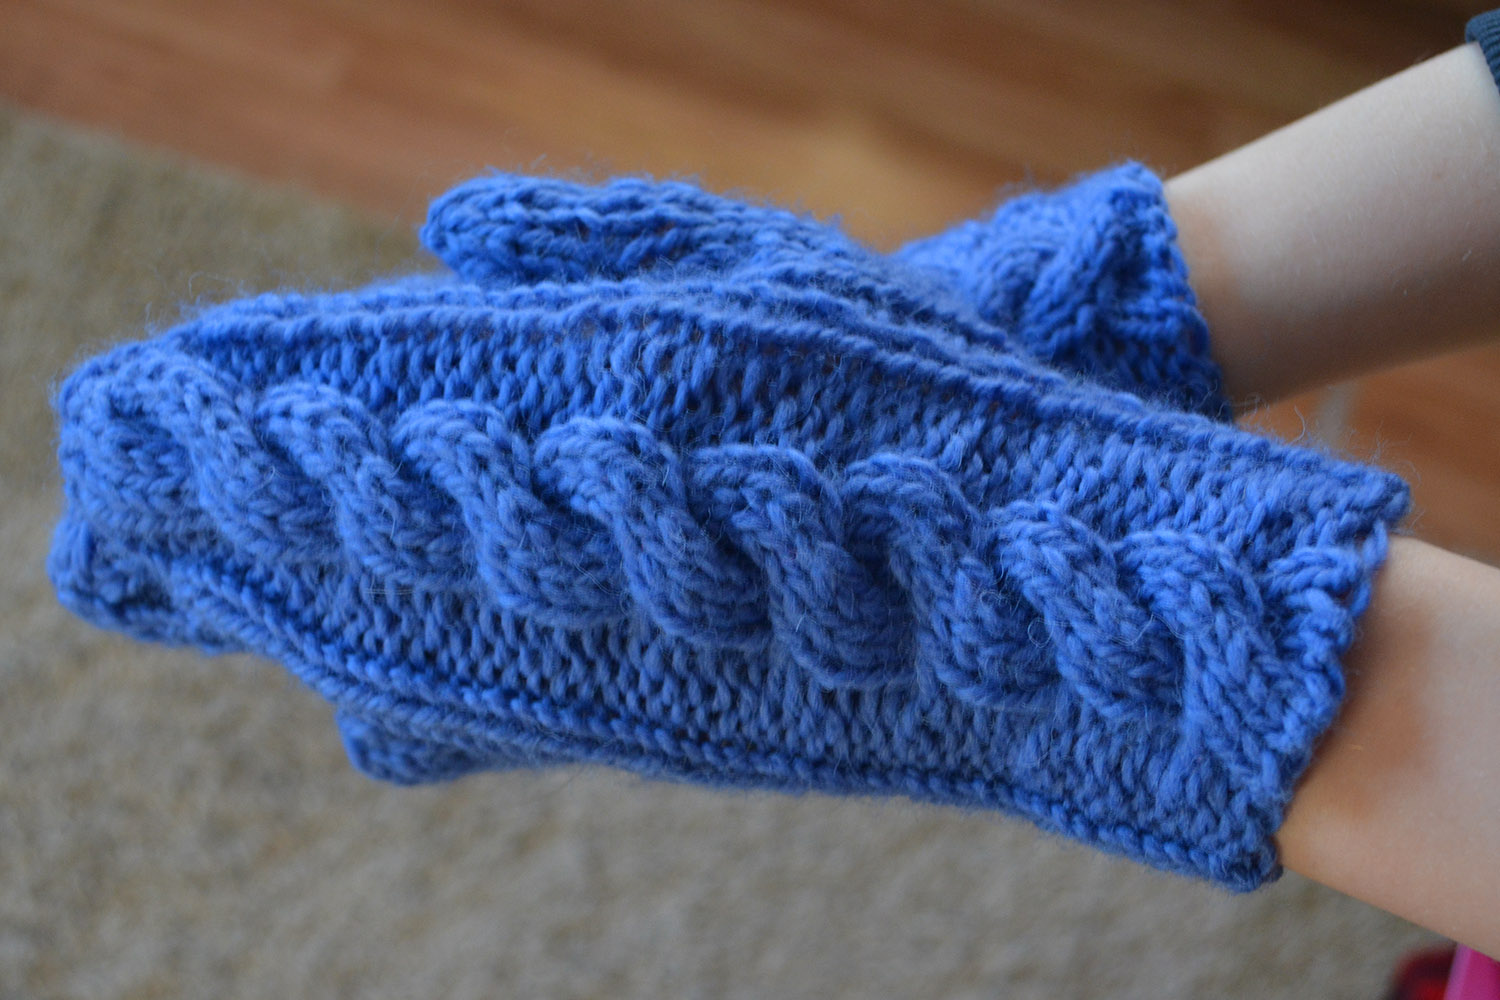 Ladies' cabled quick-knit mittens